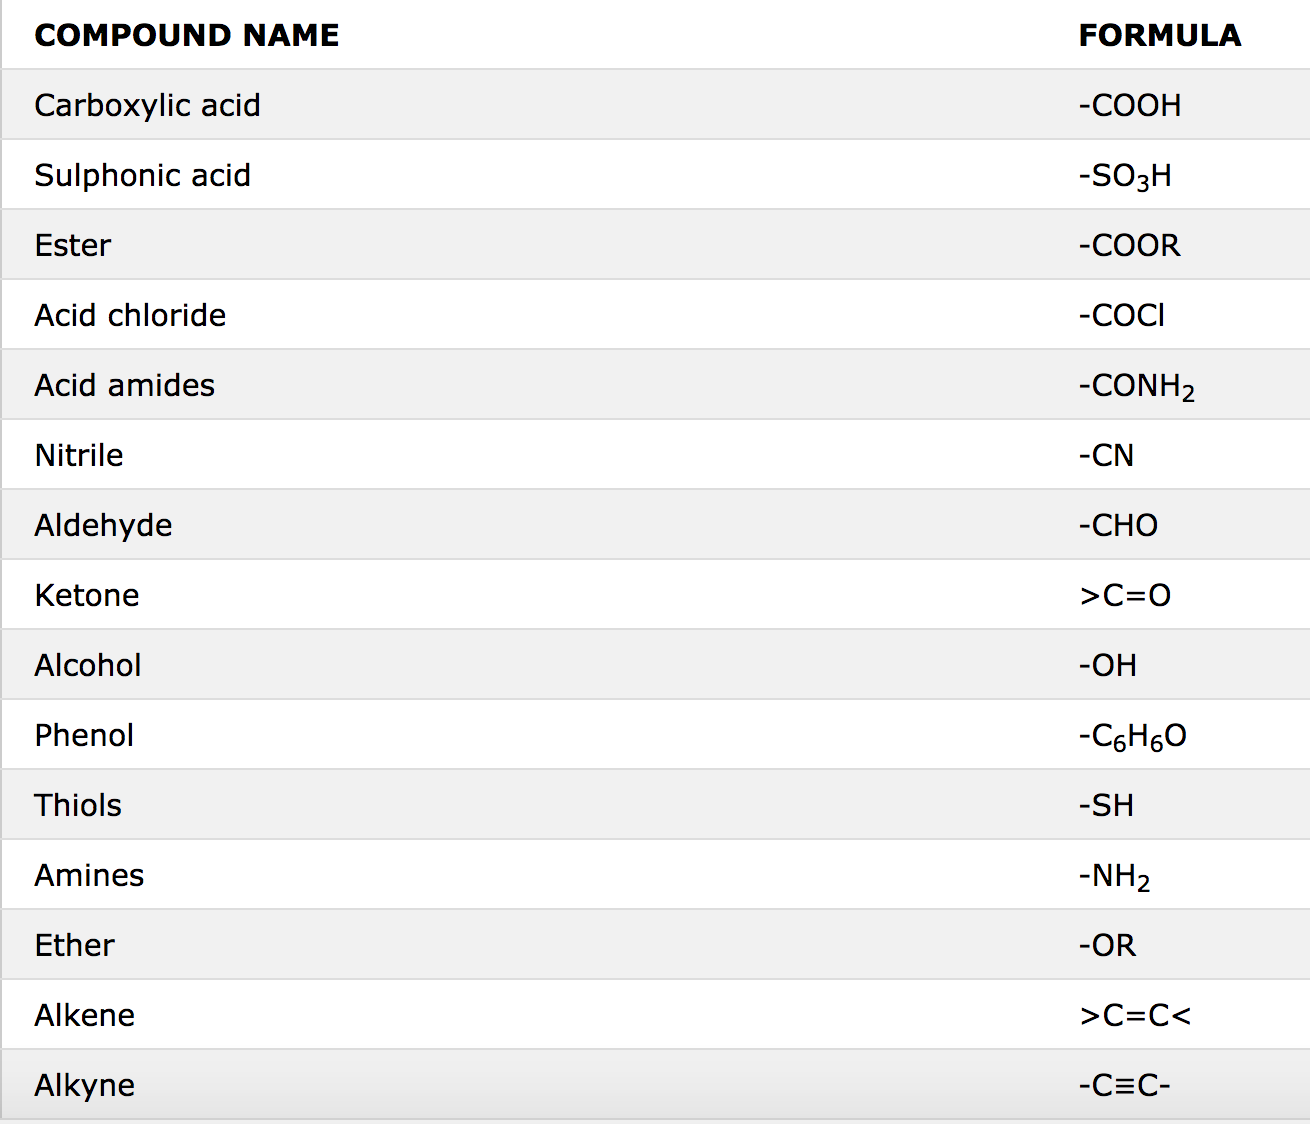 Rules For IUPAC Nomenclature Of Polyfunctional Compounds